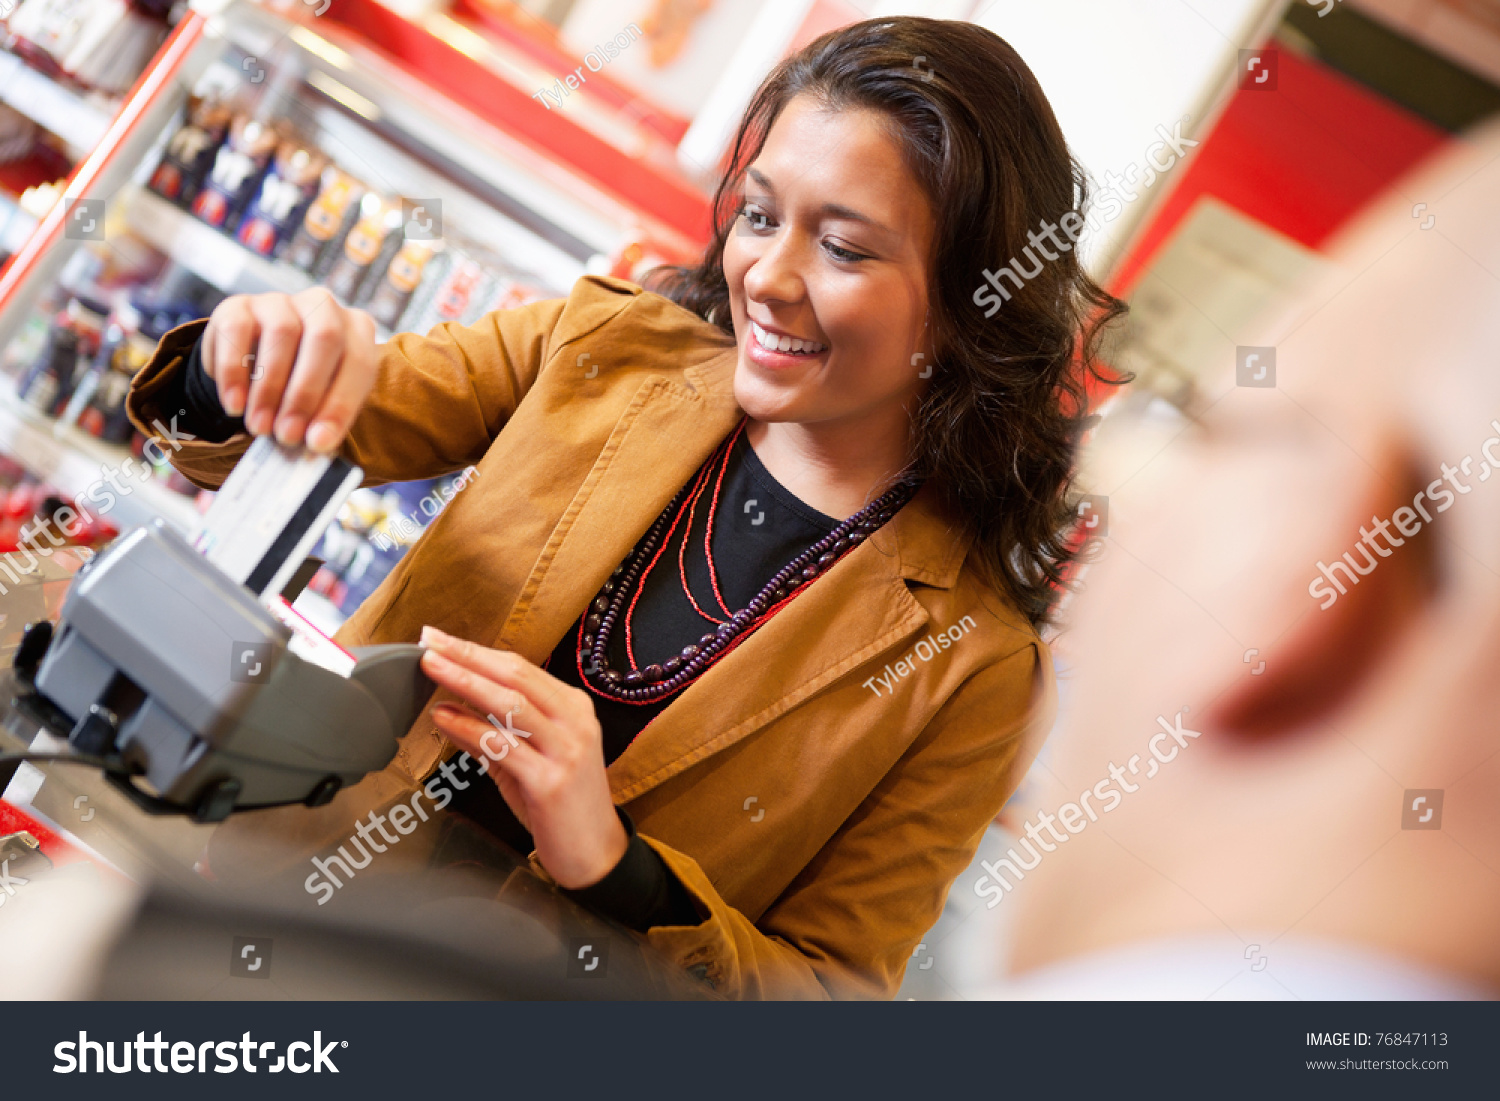 shop assistant smiling while swiping credit stock photo  shop assistant smiling while swiping credit card in supermarket customer in the foreground